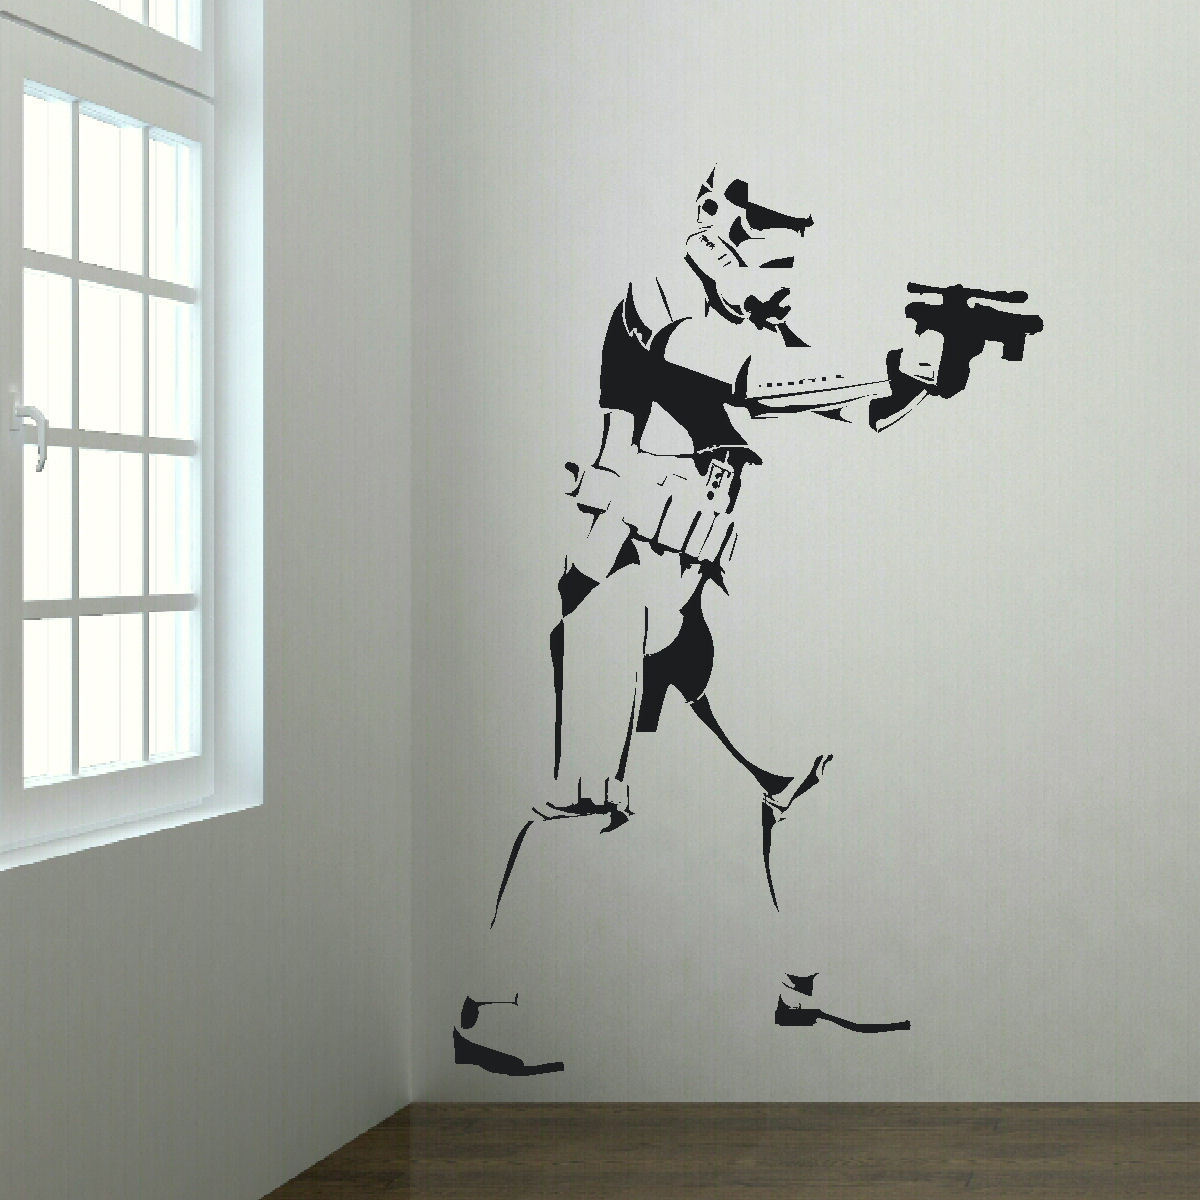 Extra Large Storm Trooper Star Wars Life Size Wall Art Big Mural Sticker Decal Jewelry